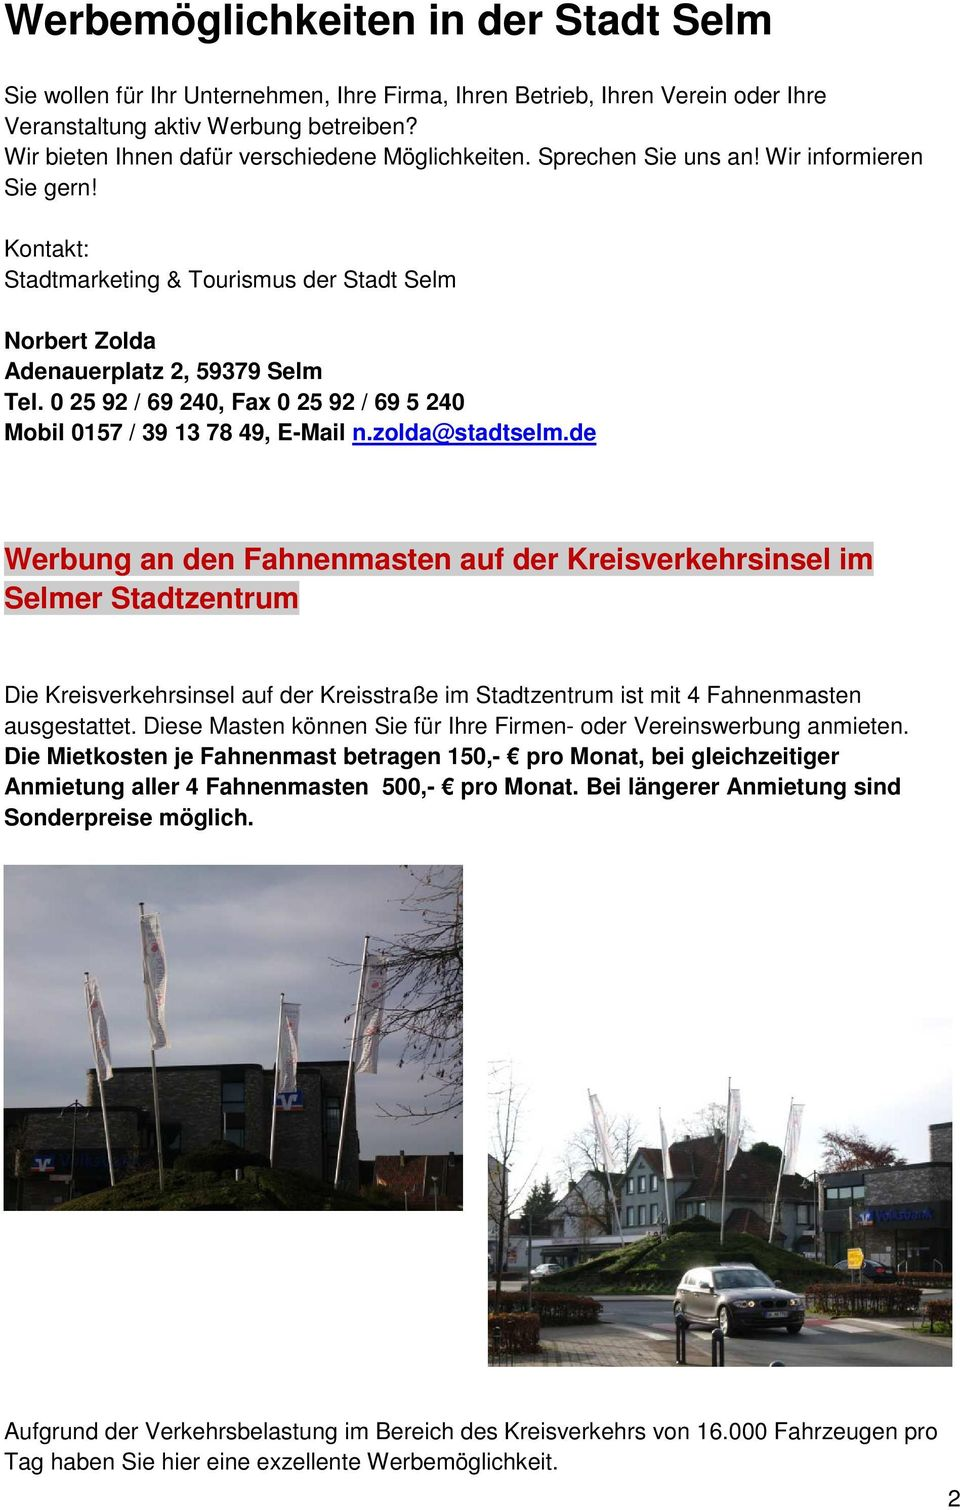 0 25 92 / 69 240, Fax 0 25 92 / 69 5 240 Mobil 0157 / 39 13 78 49, E-Mail n.zolda@stadtselm.